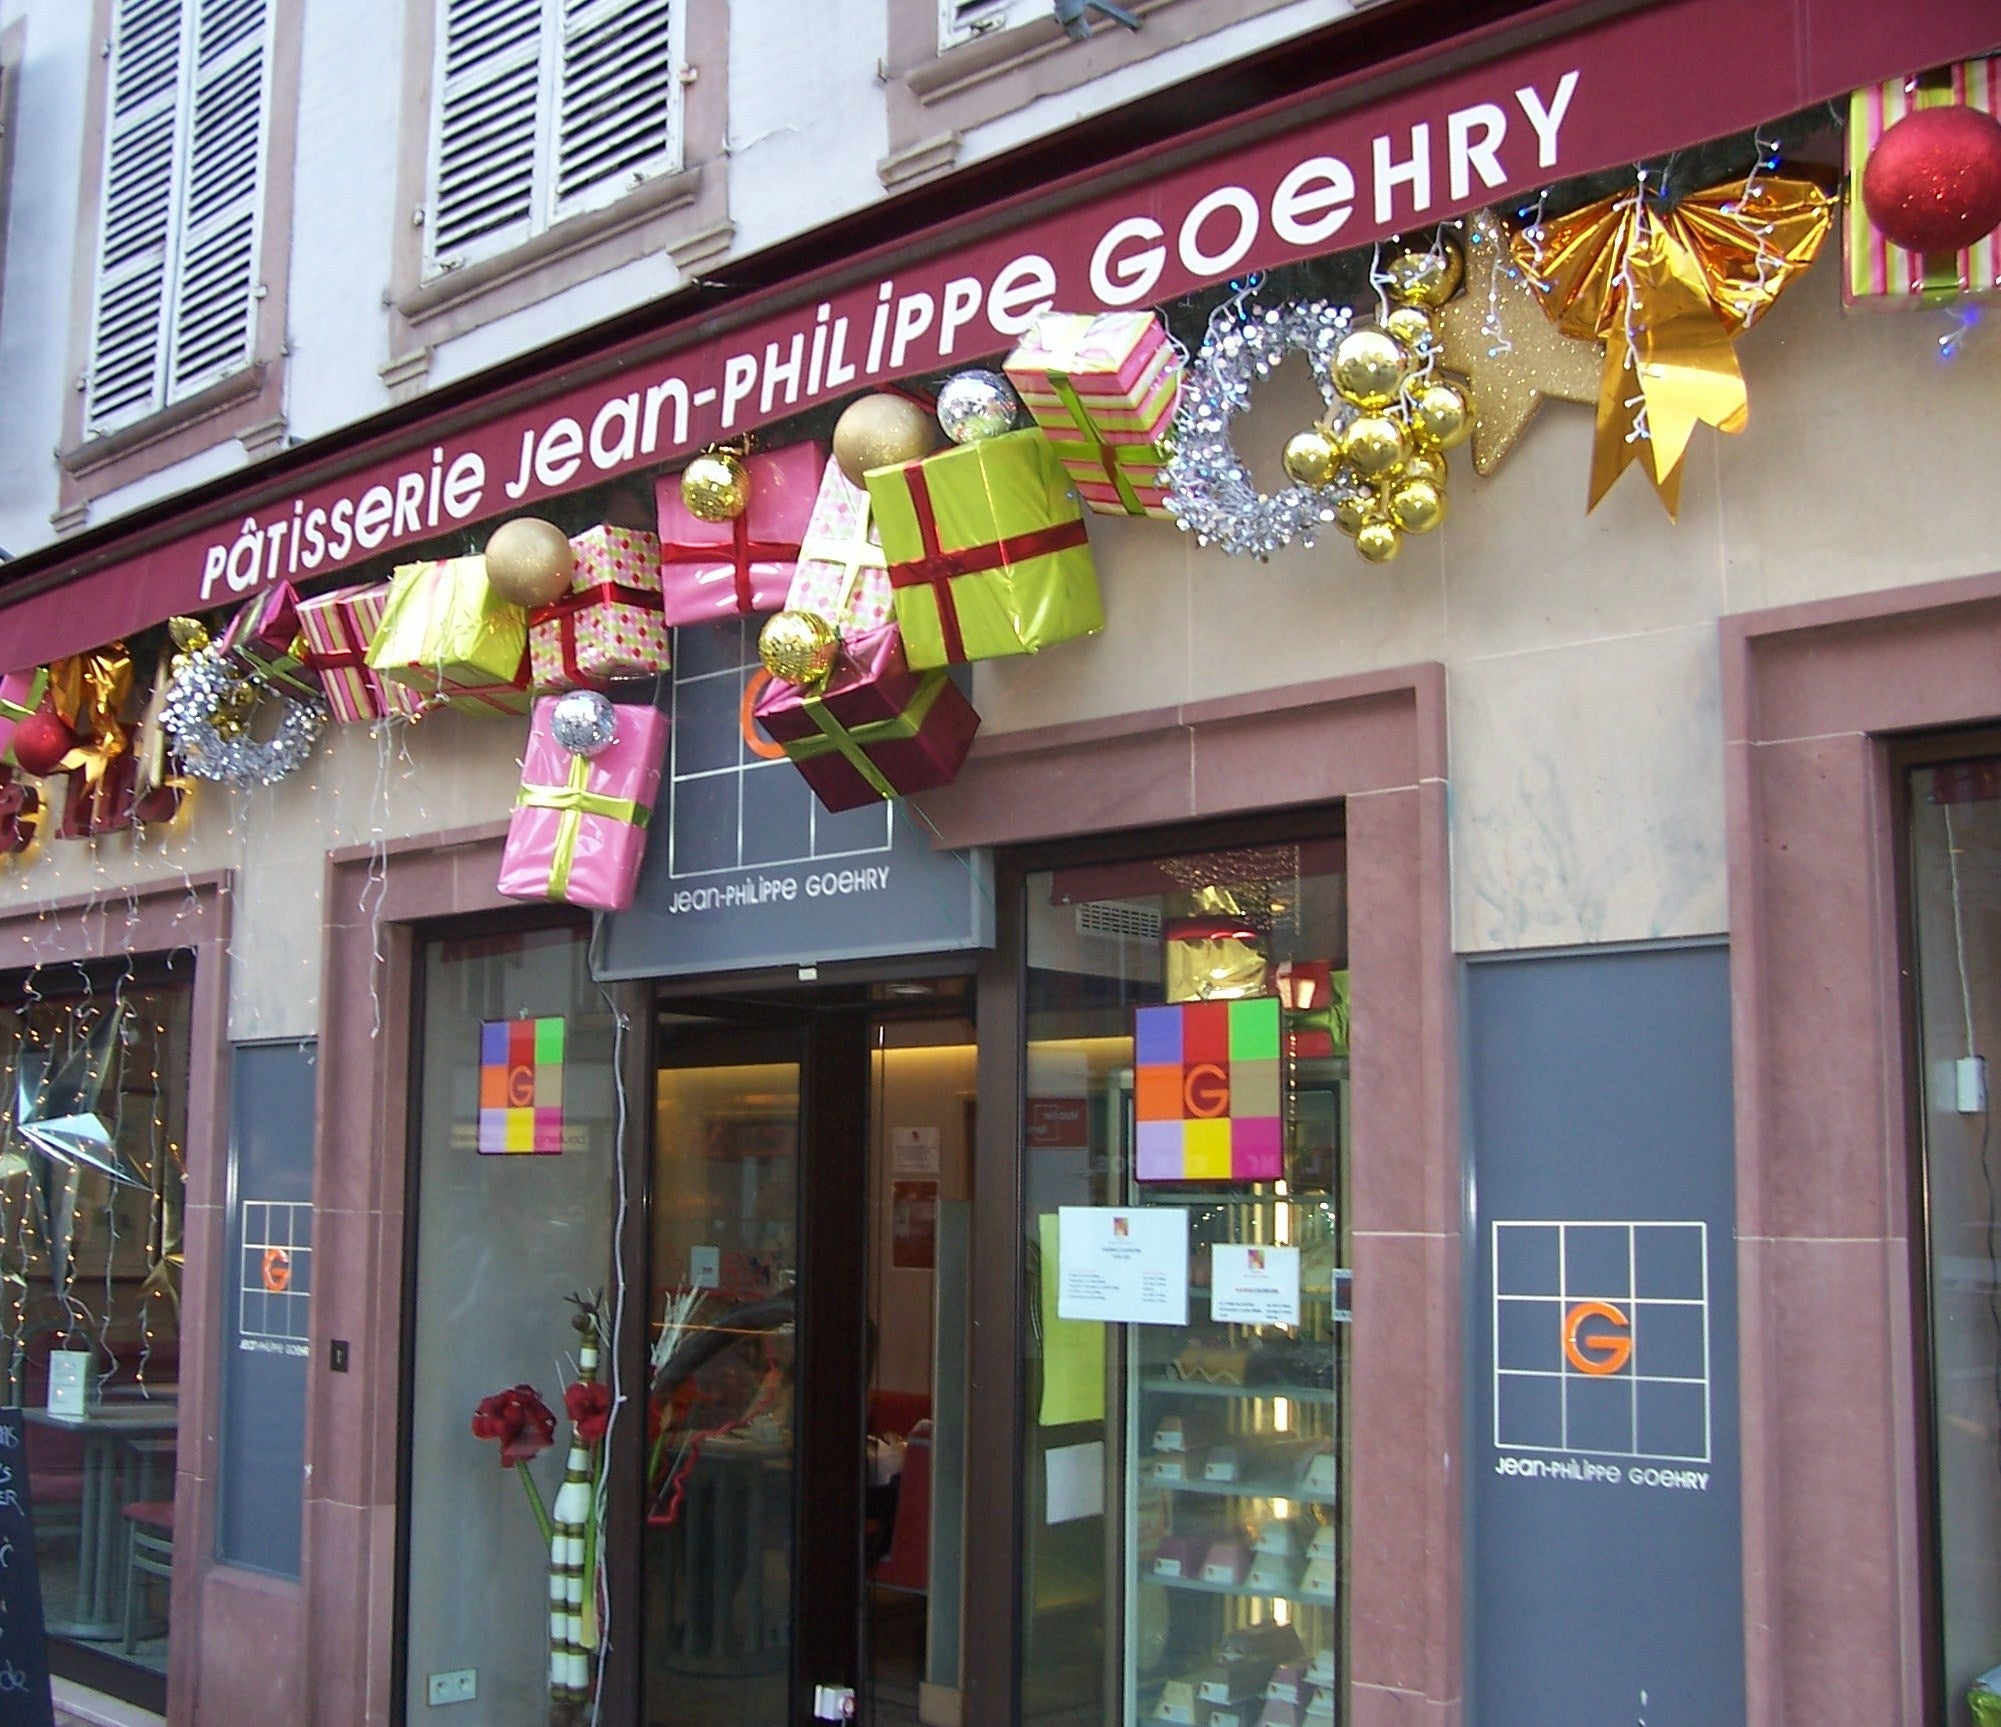 Pâtisserie Jean-Philippe Goehry